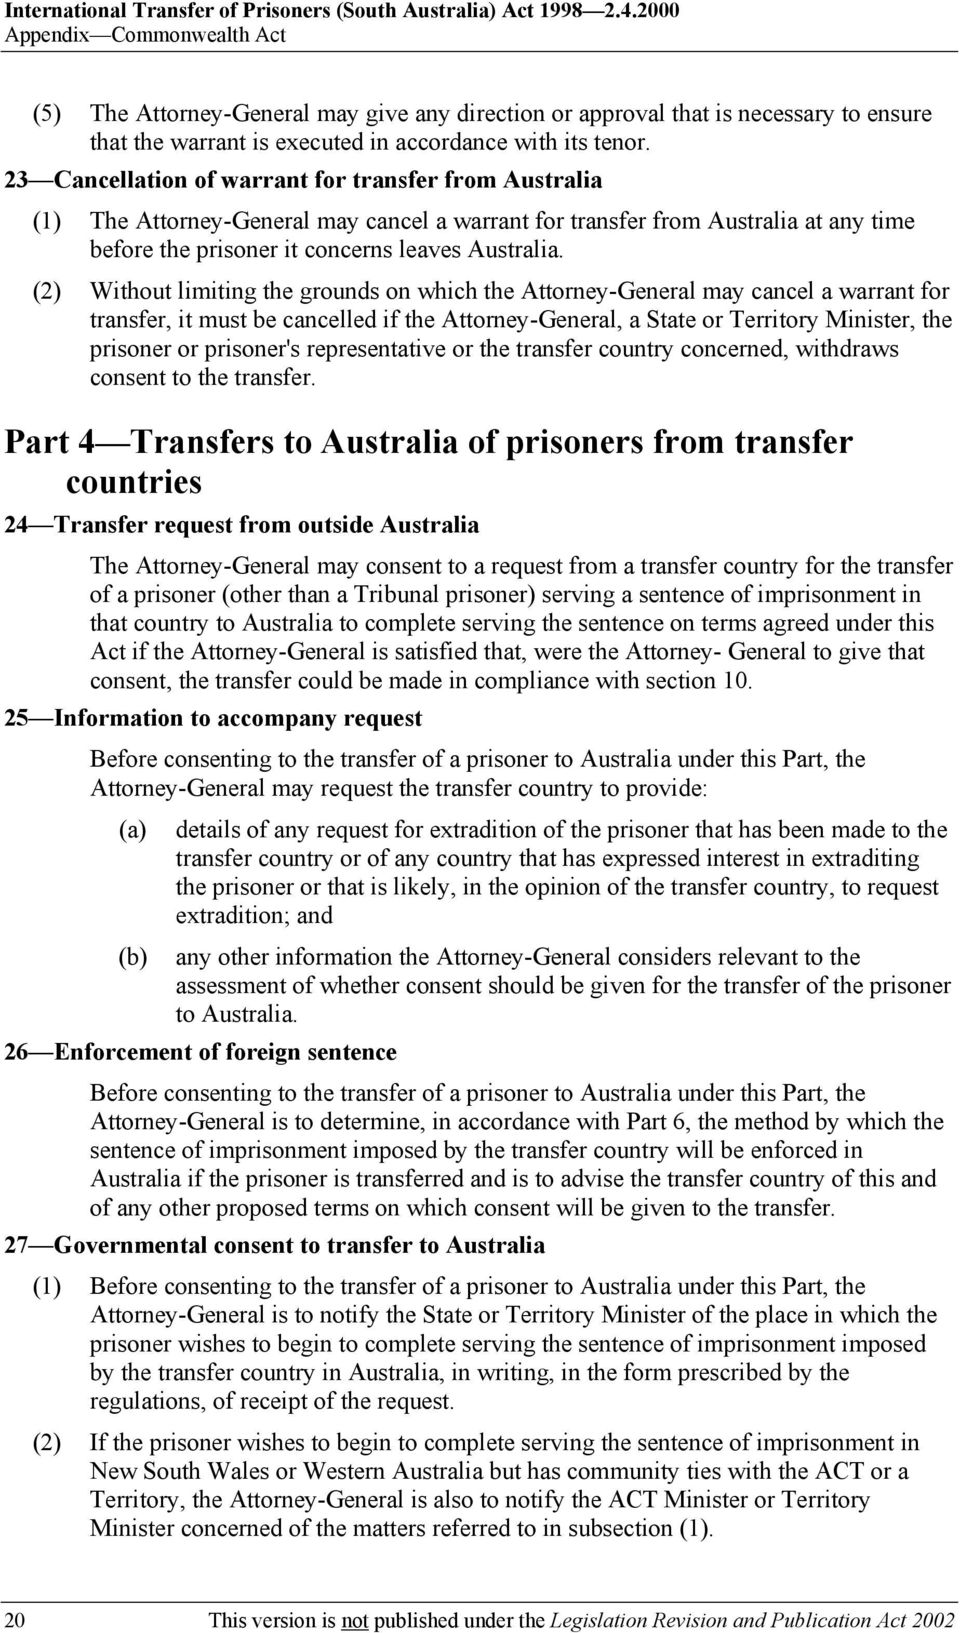 23 Cancellation of warrant for transfer from Australia (1) The Attorney-General may cancel a warrant for transfer from Australia at any time before the prisoner it concerns leaves Australia.